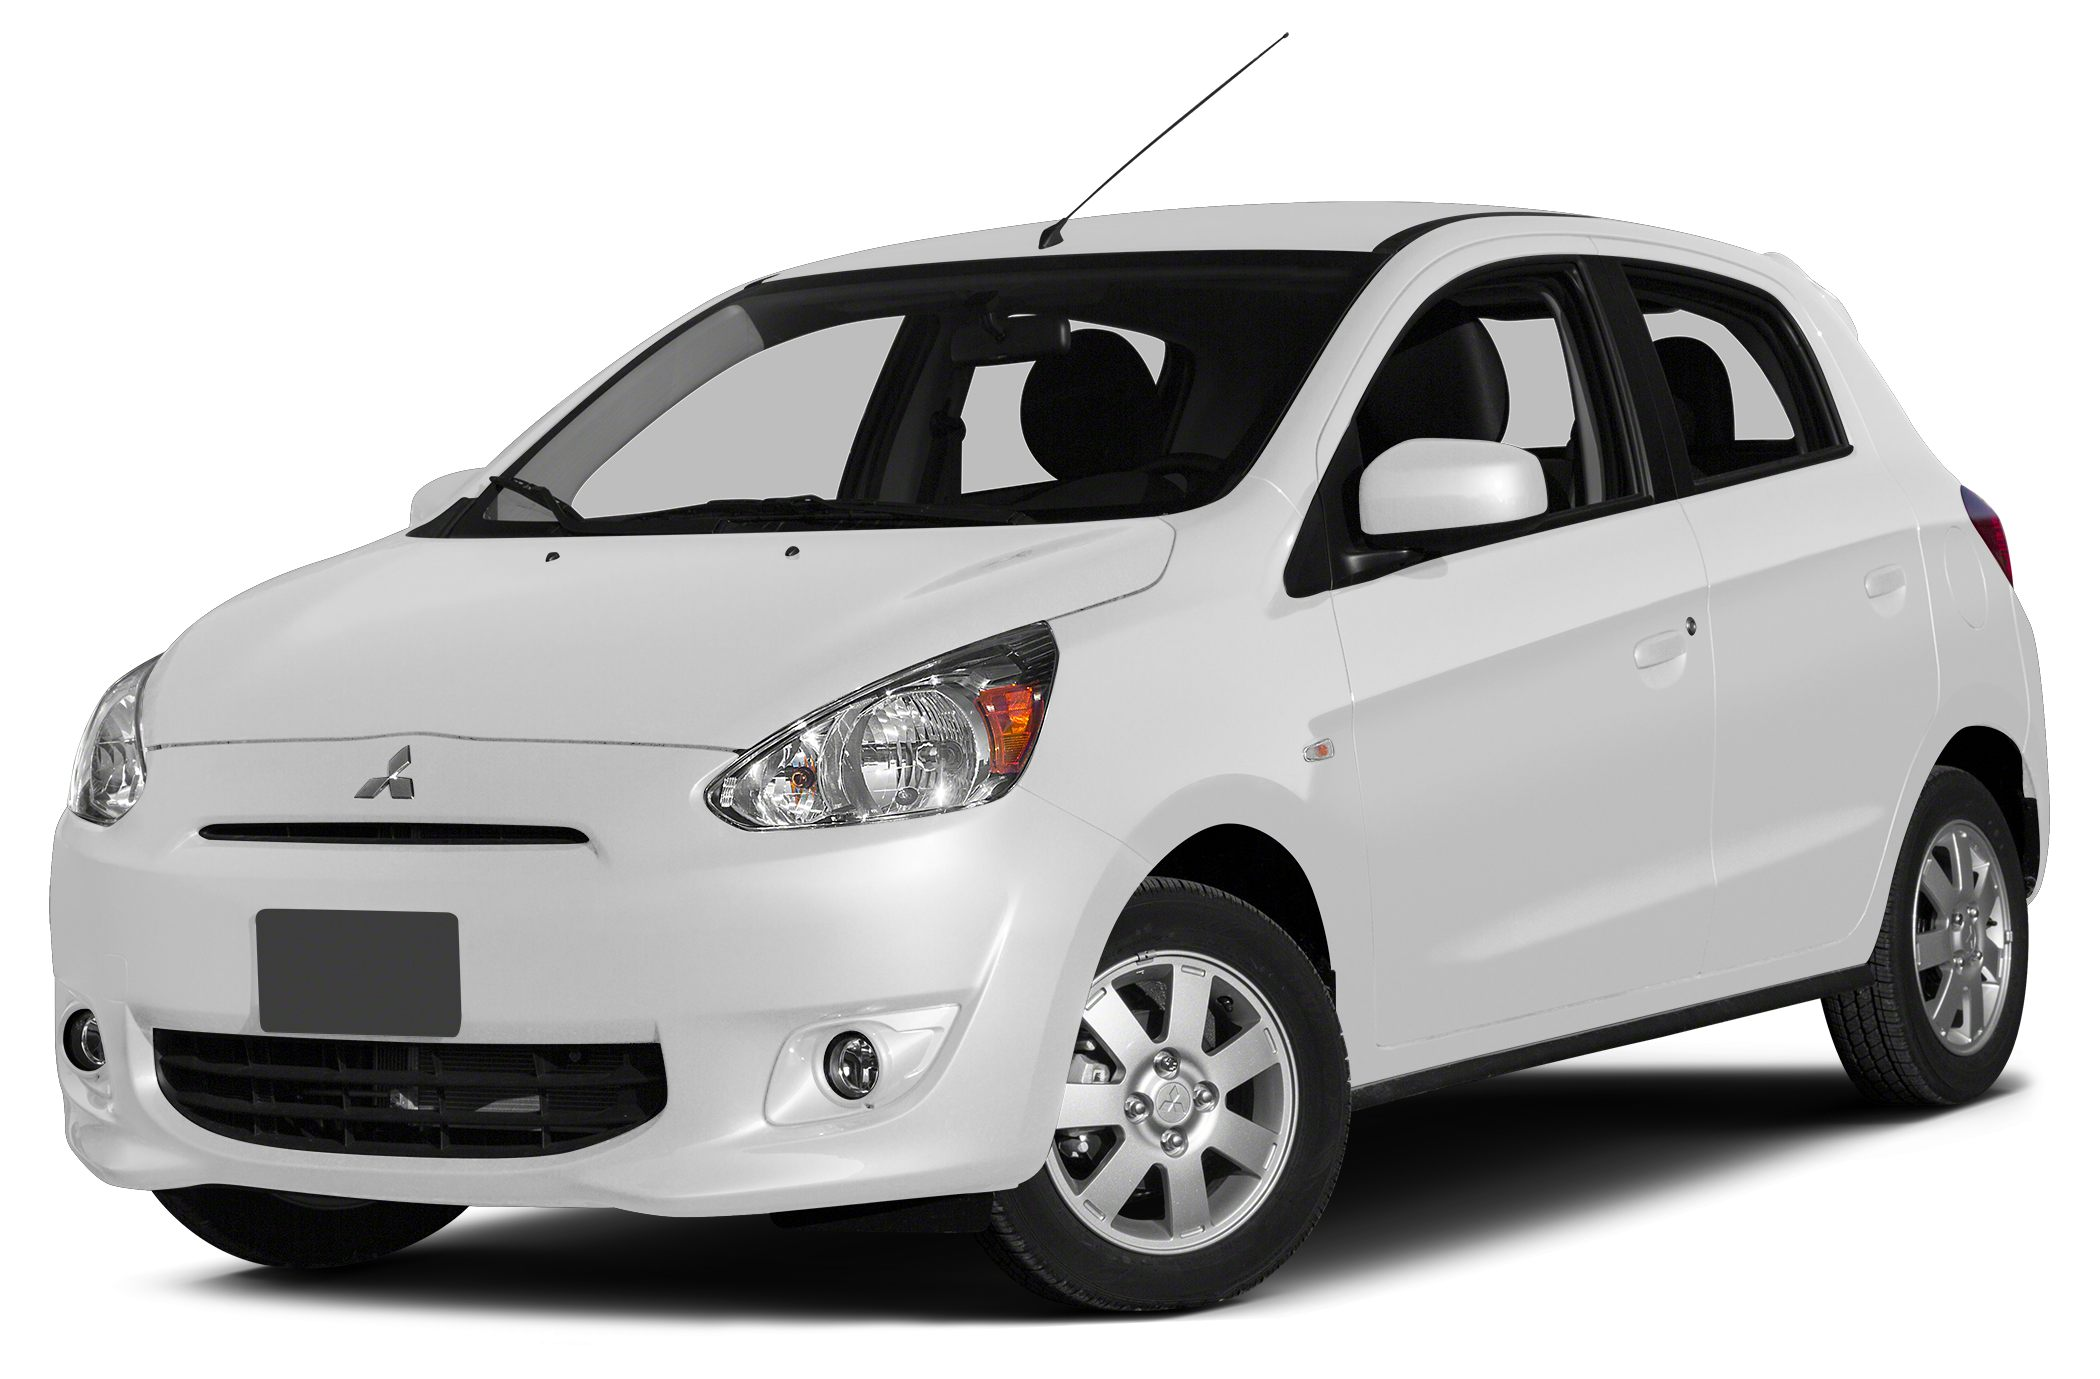 2014 Mitsubishi Mirage DE OUR PRICESYoure probably wondering why our prices are so much lower th